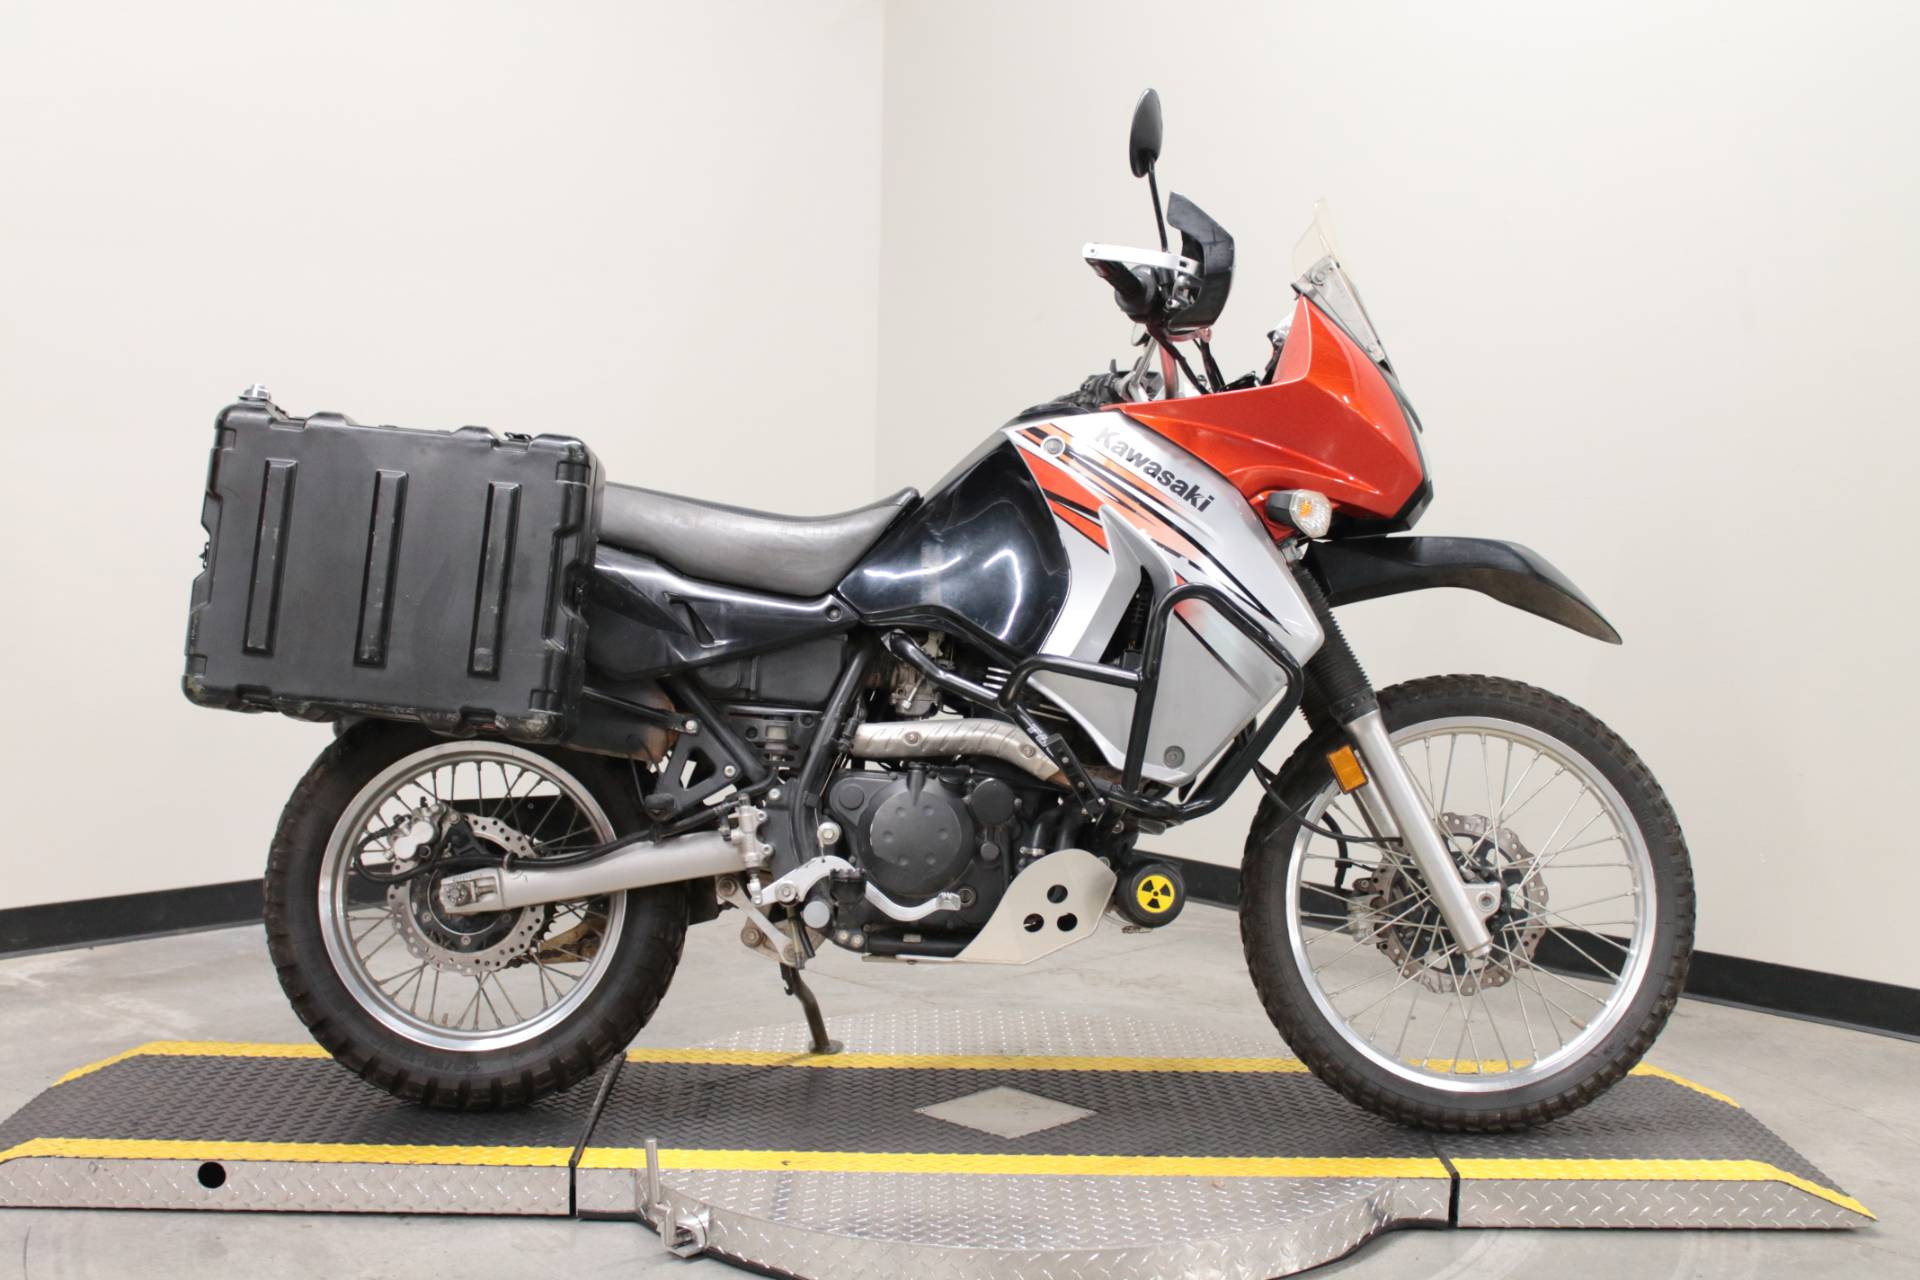 2012 Kawasaki KLR™ 650 in Fort Worth, Texas - Photo 1